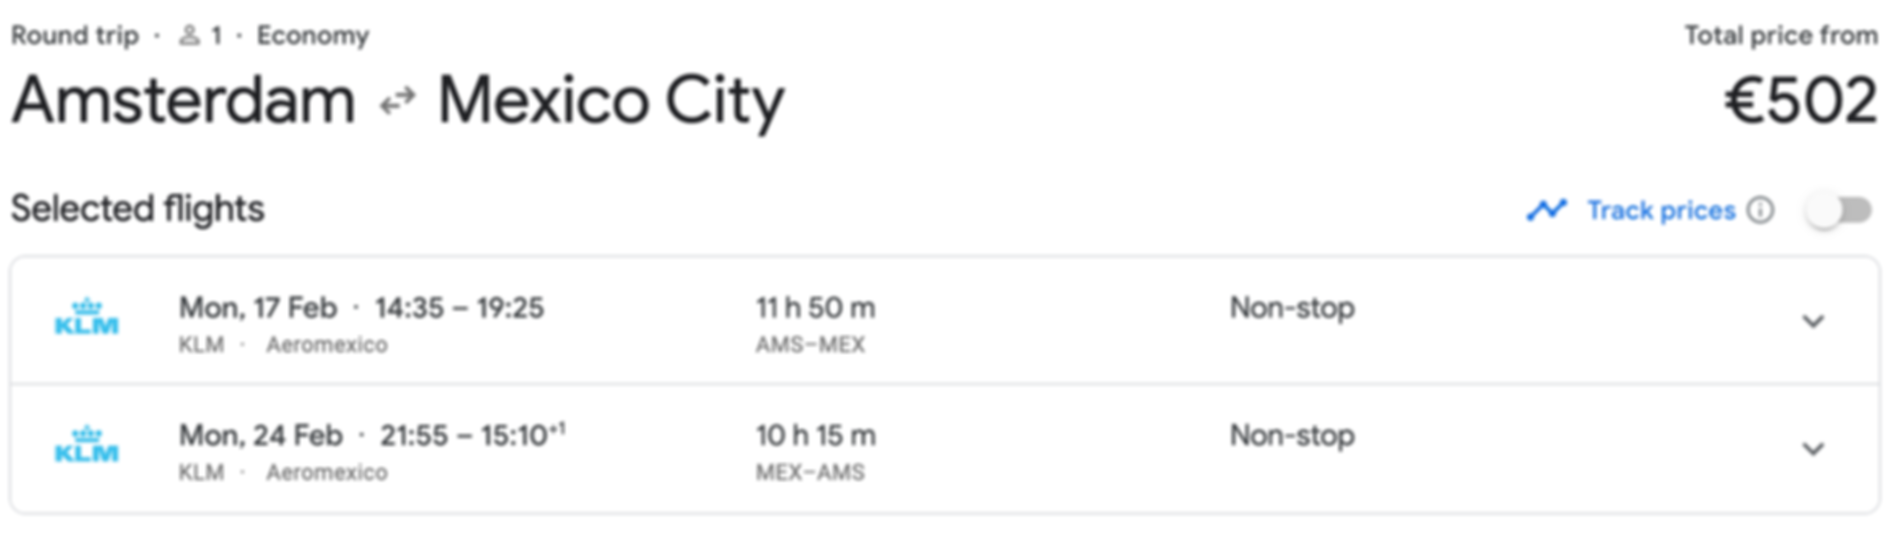 Amsterdam - Mexico City just €502 RTN (DIRECT)